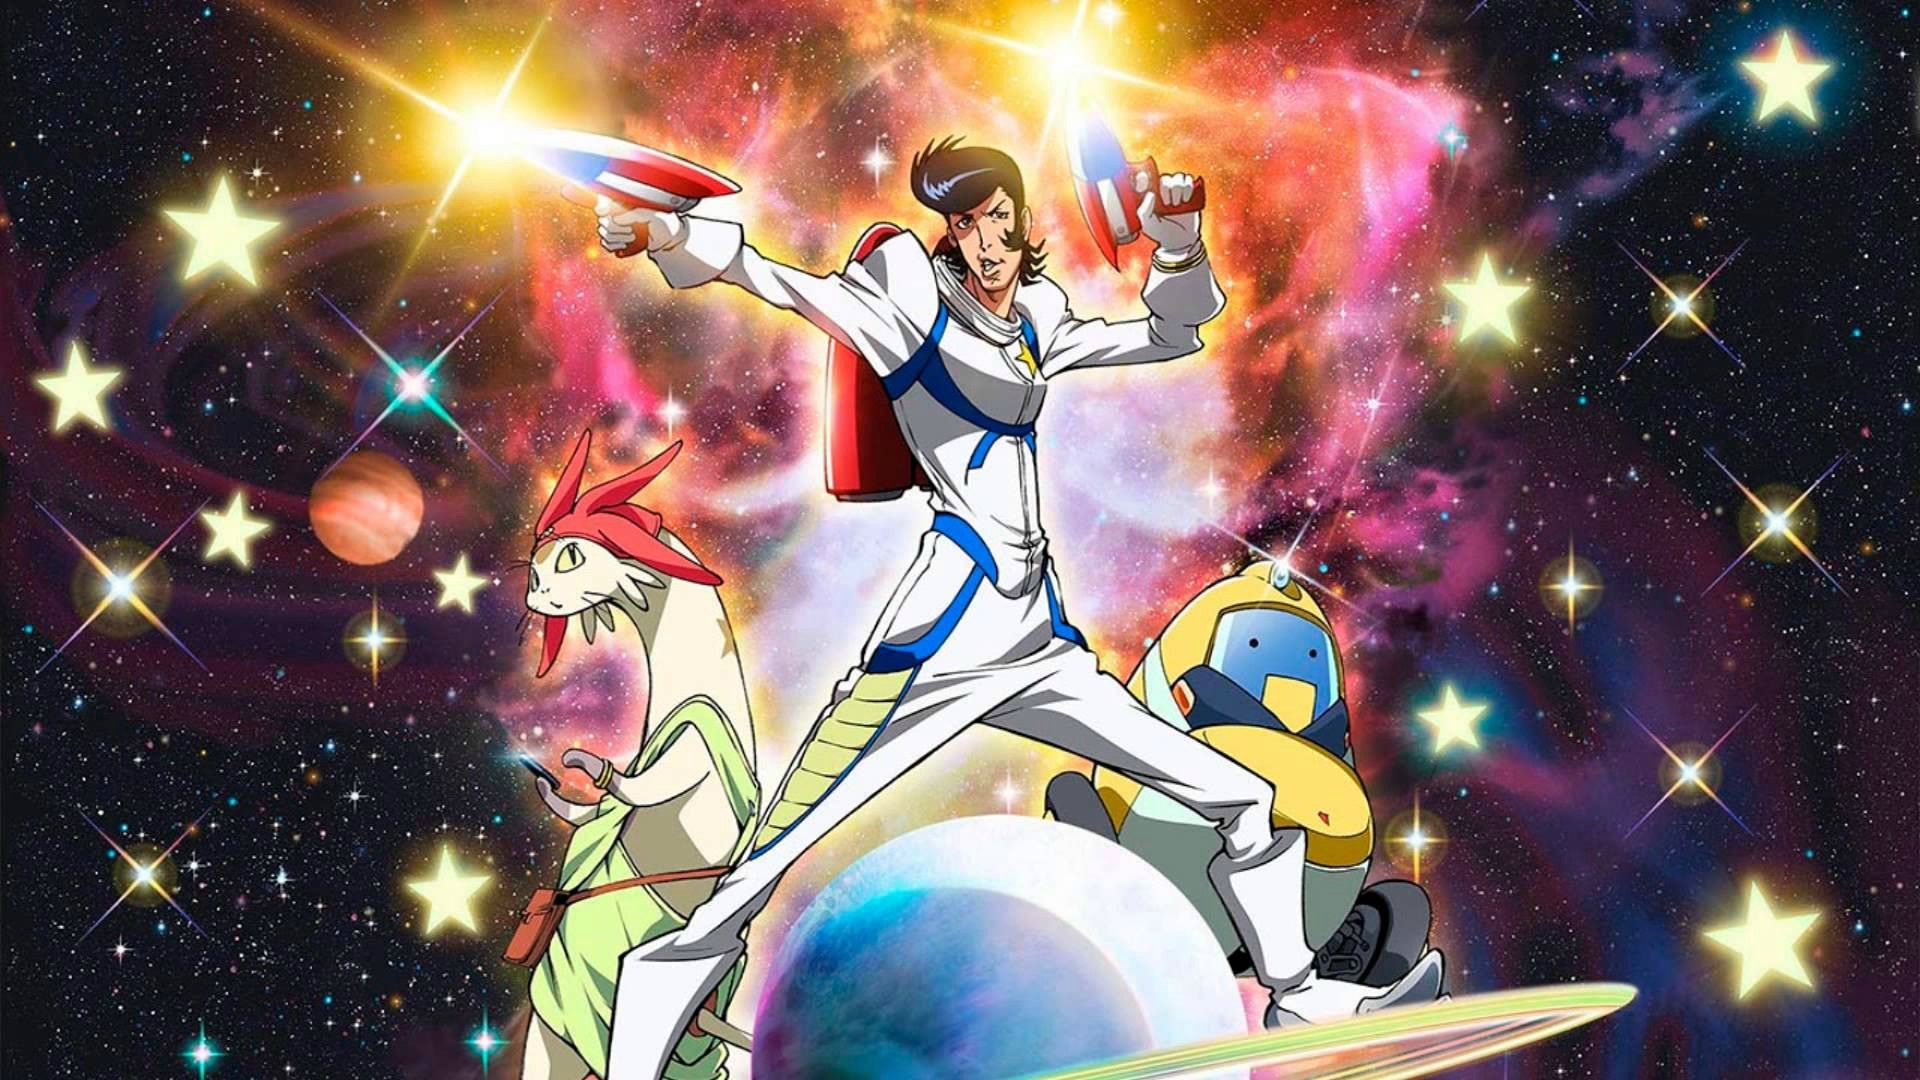 Space Dandy Wallpapers - Top Free Space Dandy Backgrounds - WallpaperAccess